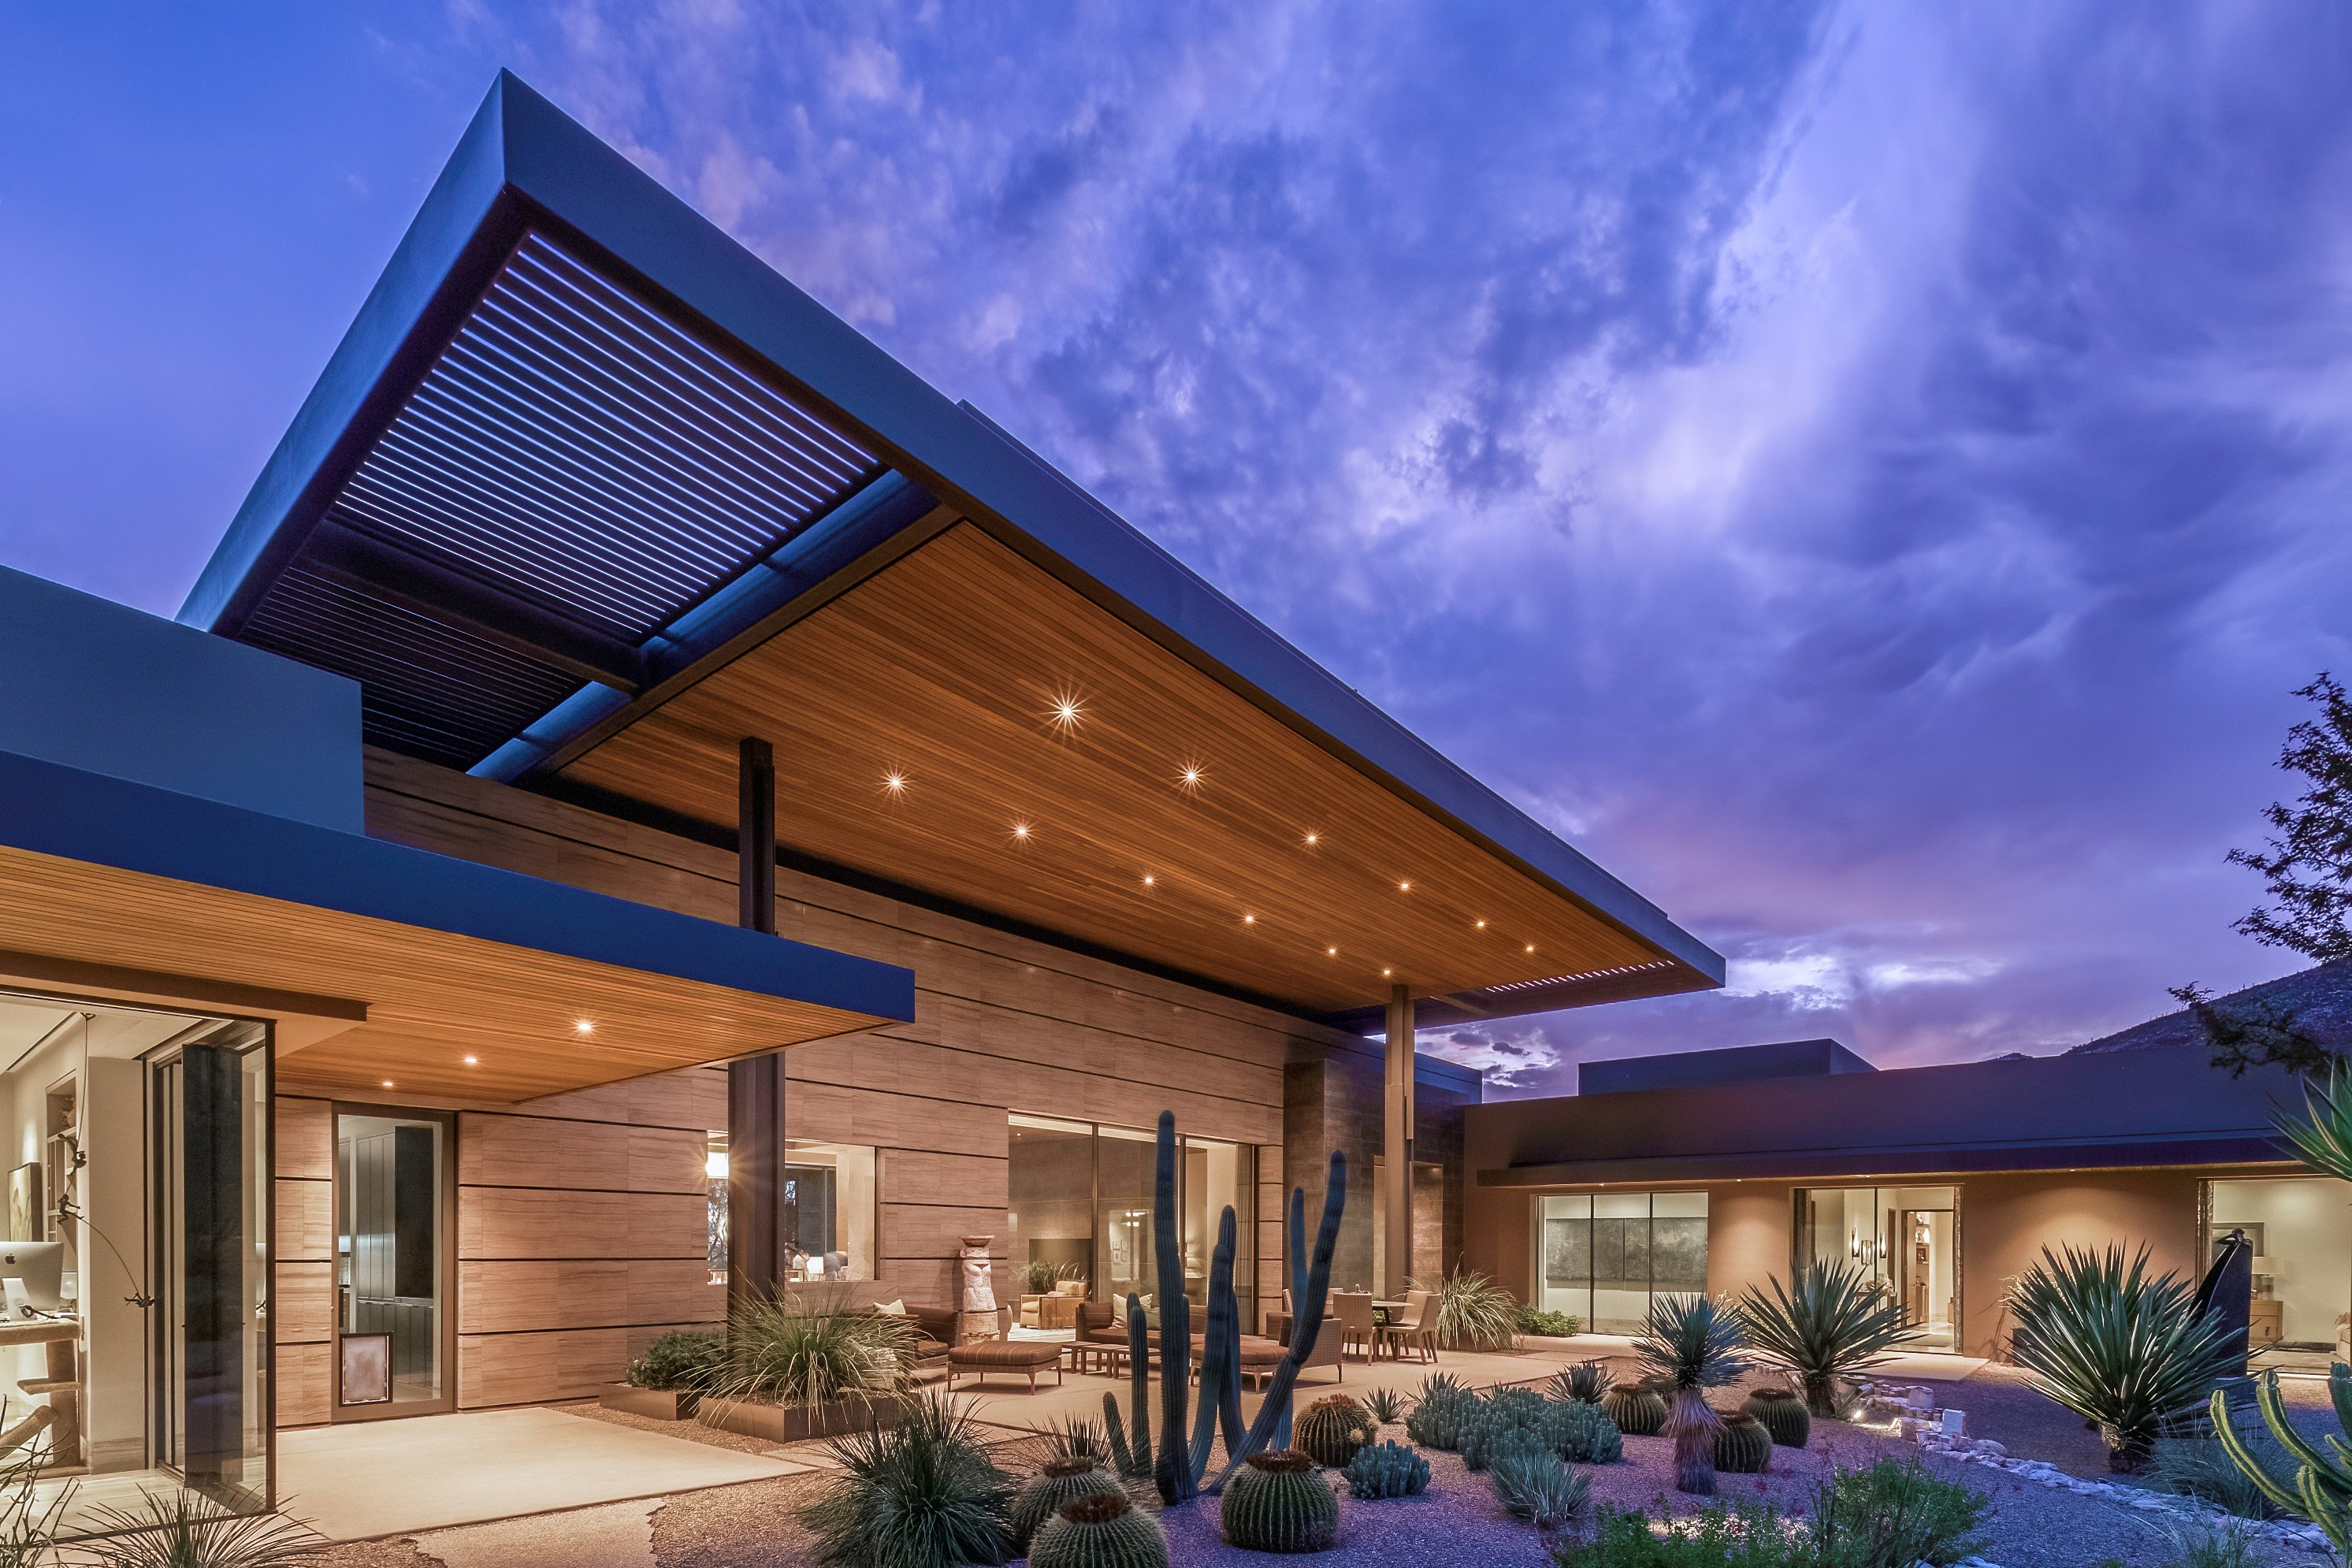 Arizona's Top Rated Local® Architects Award Winner: Robinette Architects, Inc.